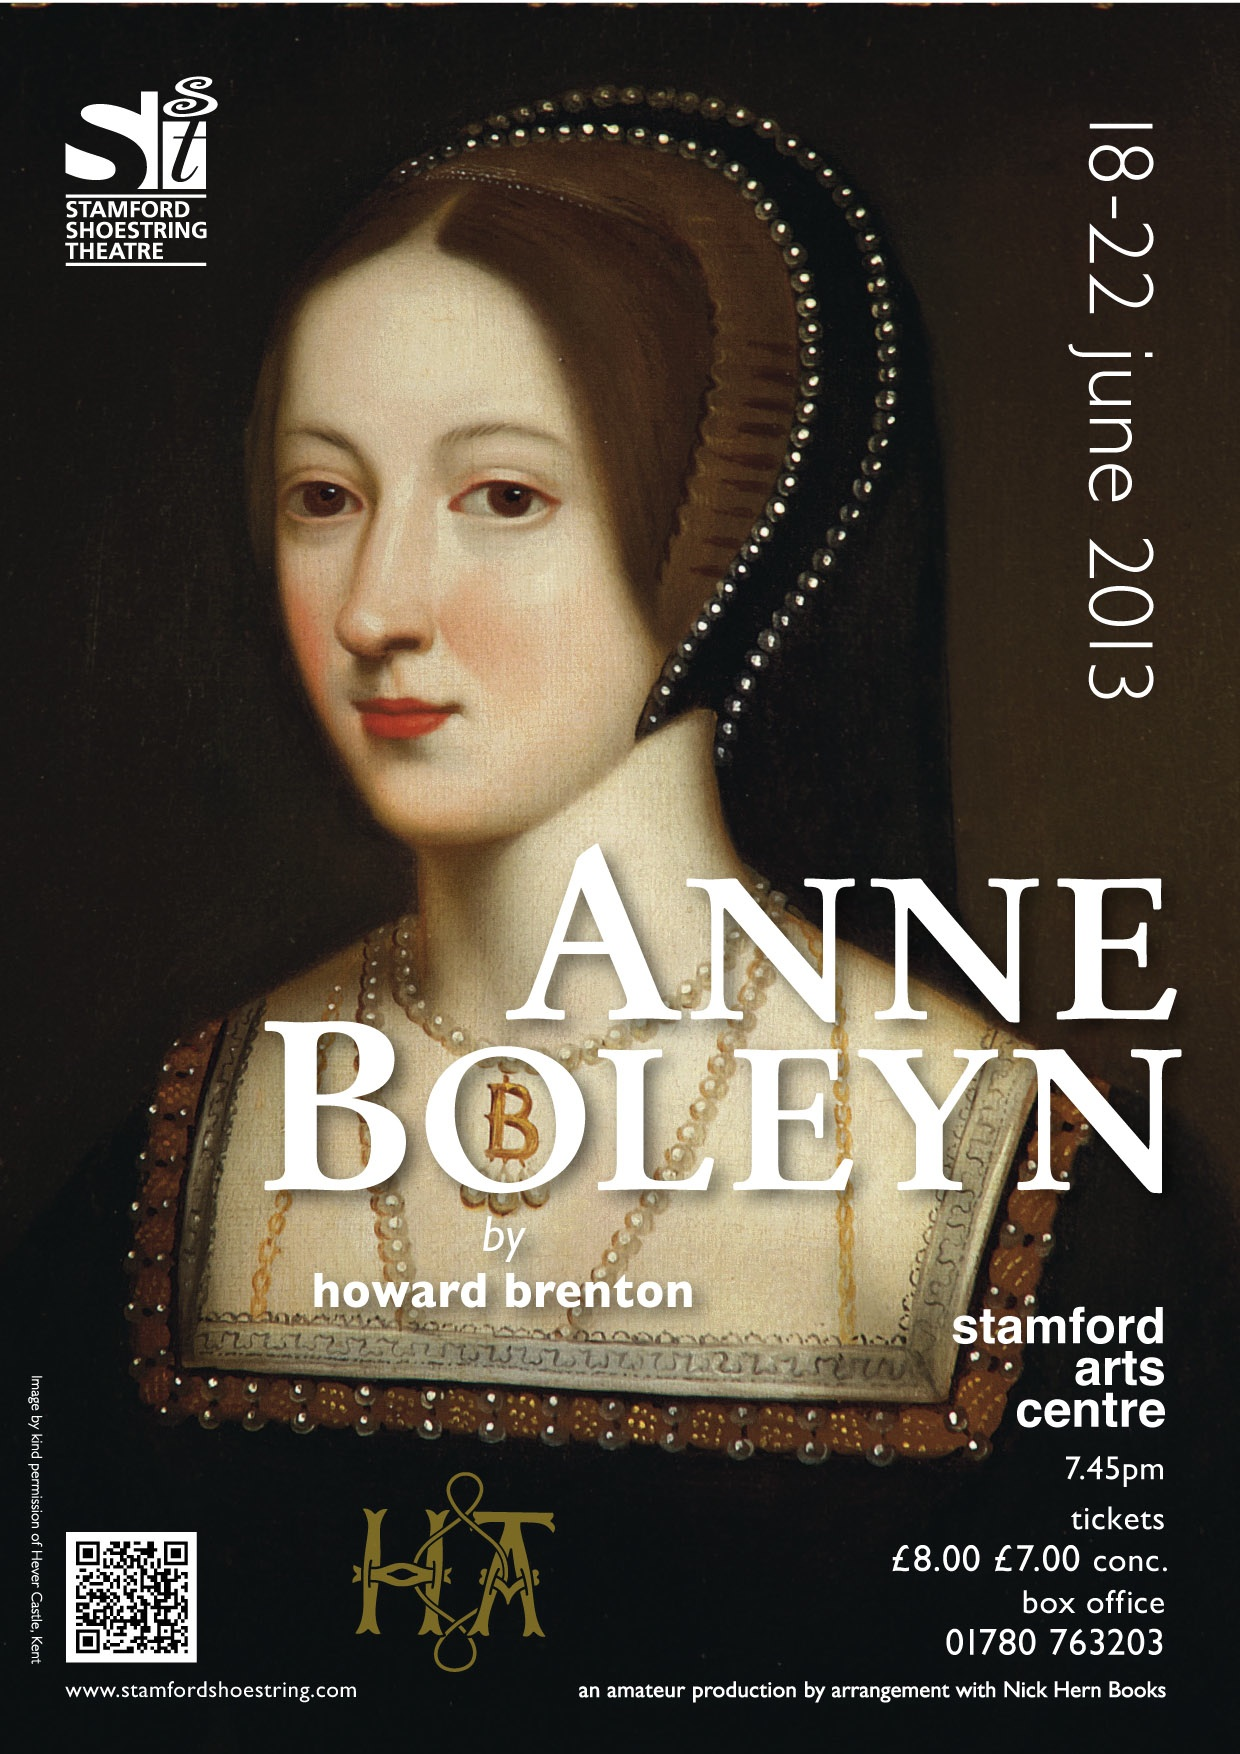 Nick Hern Books - Plays to Perform - Advertise Your Show images - ANNE BOLEYN Stamford